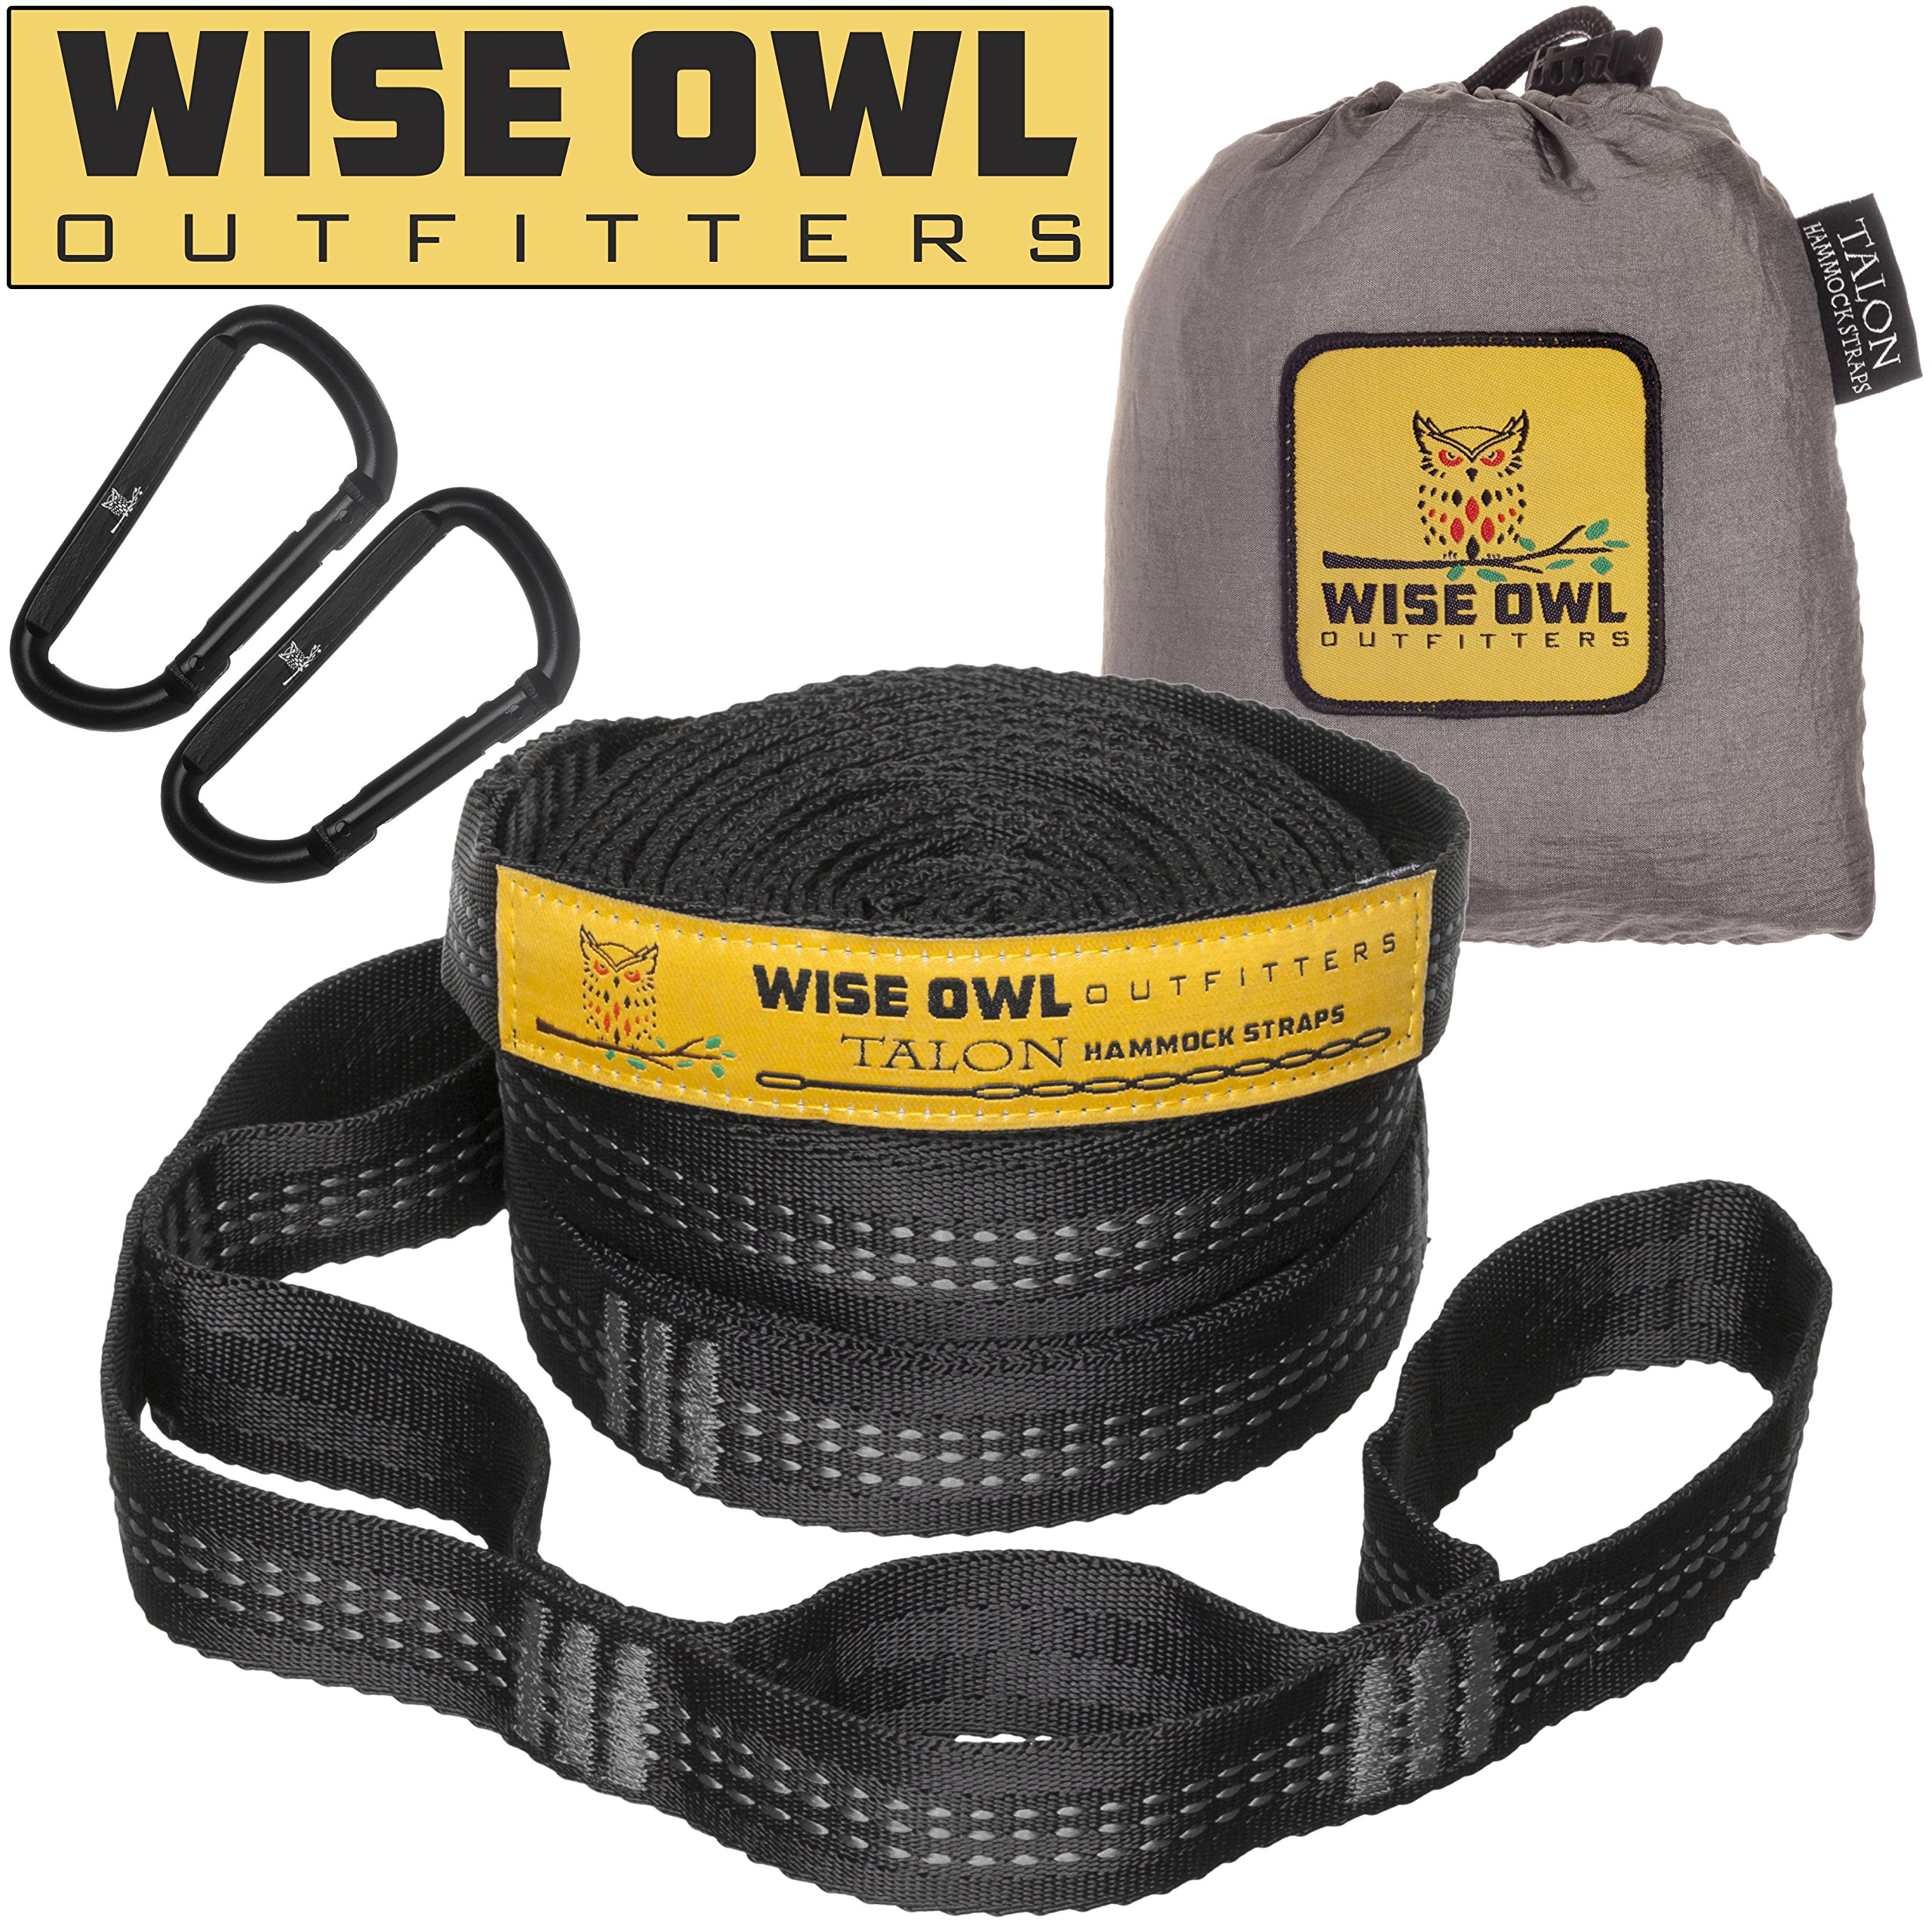 Wise Owl Outfitters Hammock Straps Combined 20 Ft Long, 38 Loops with 2 D Carabiners - Easily Adjustable Tree Friendly Must Have Accessories & Gear for Hanging Camping Hammocks Like Eno Grey Stitch by Wise Owl Outfitters